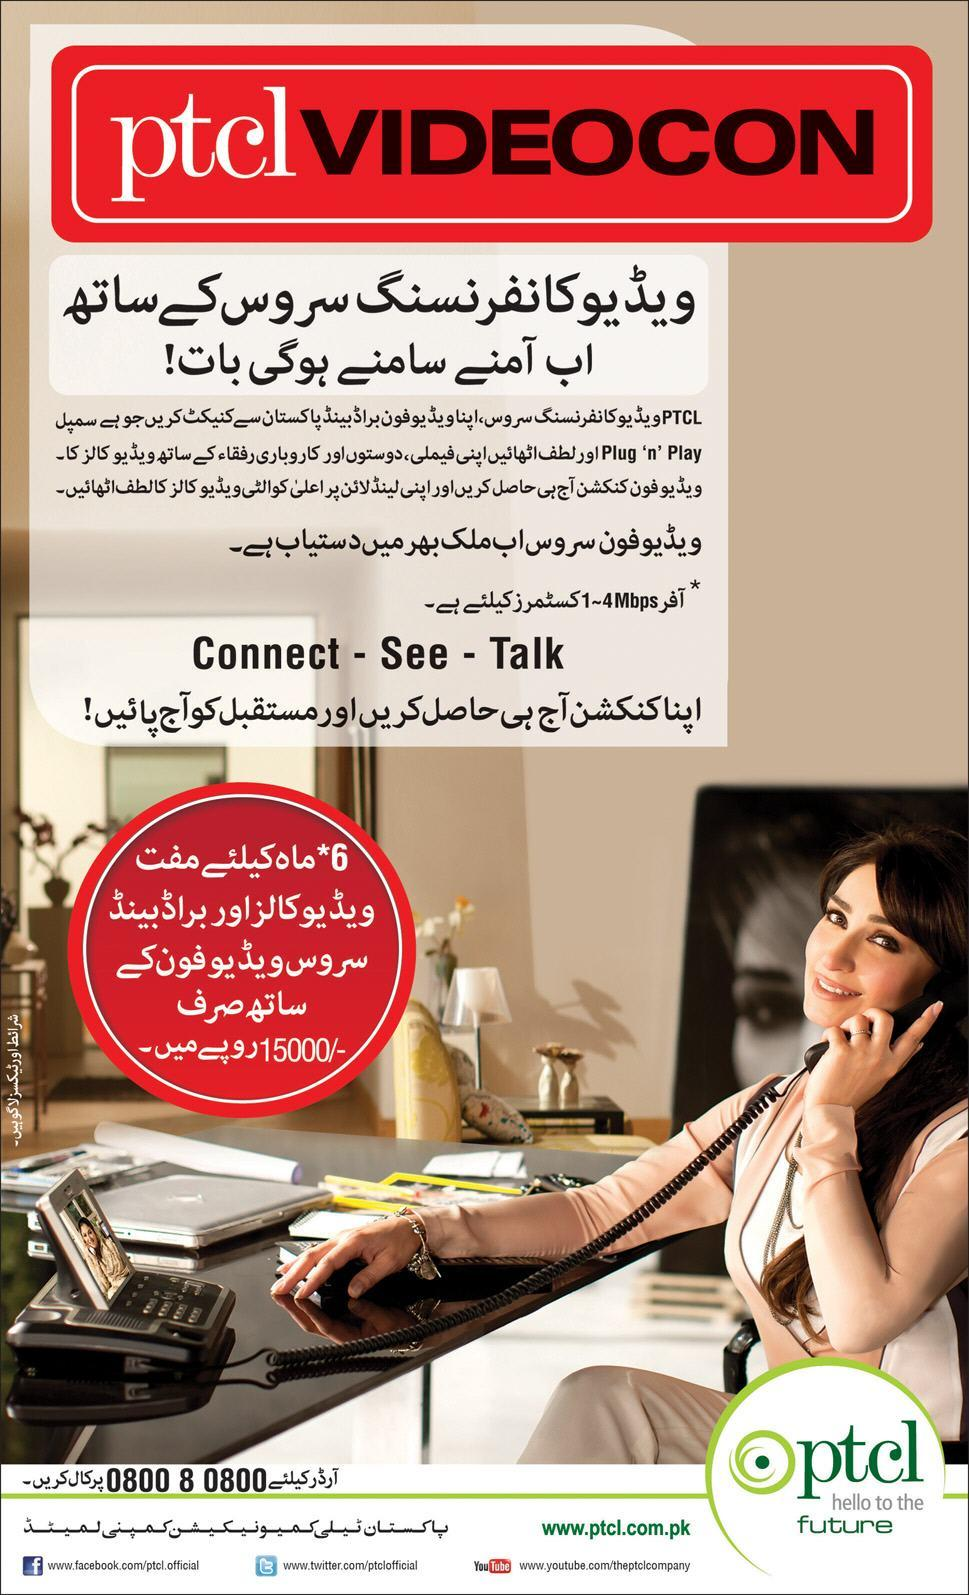 PTCL Offers Landline Video Phone Service for Their Customers Zong launches TimePay: Mobile Banking with Askari Bank